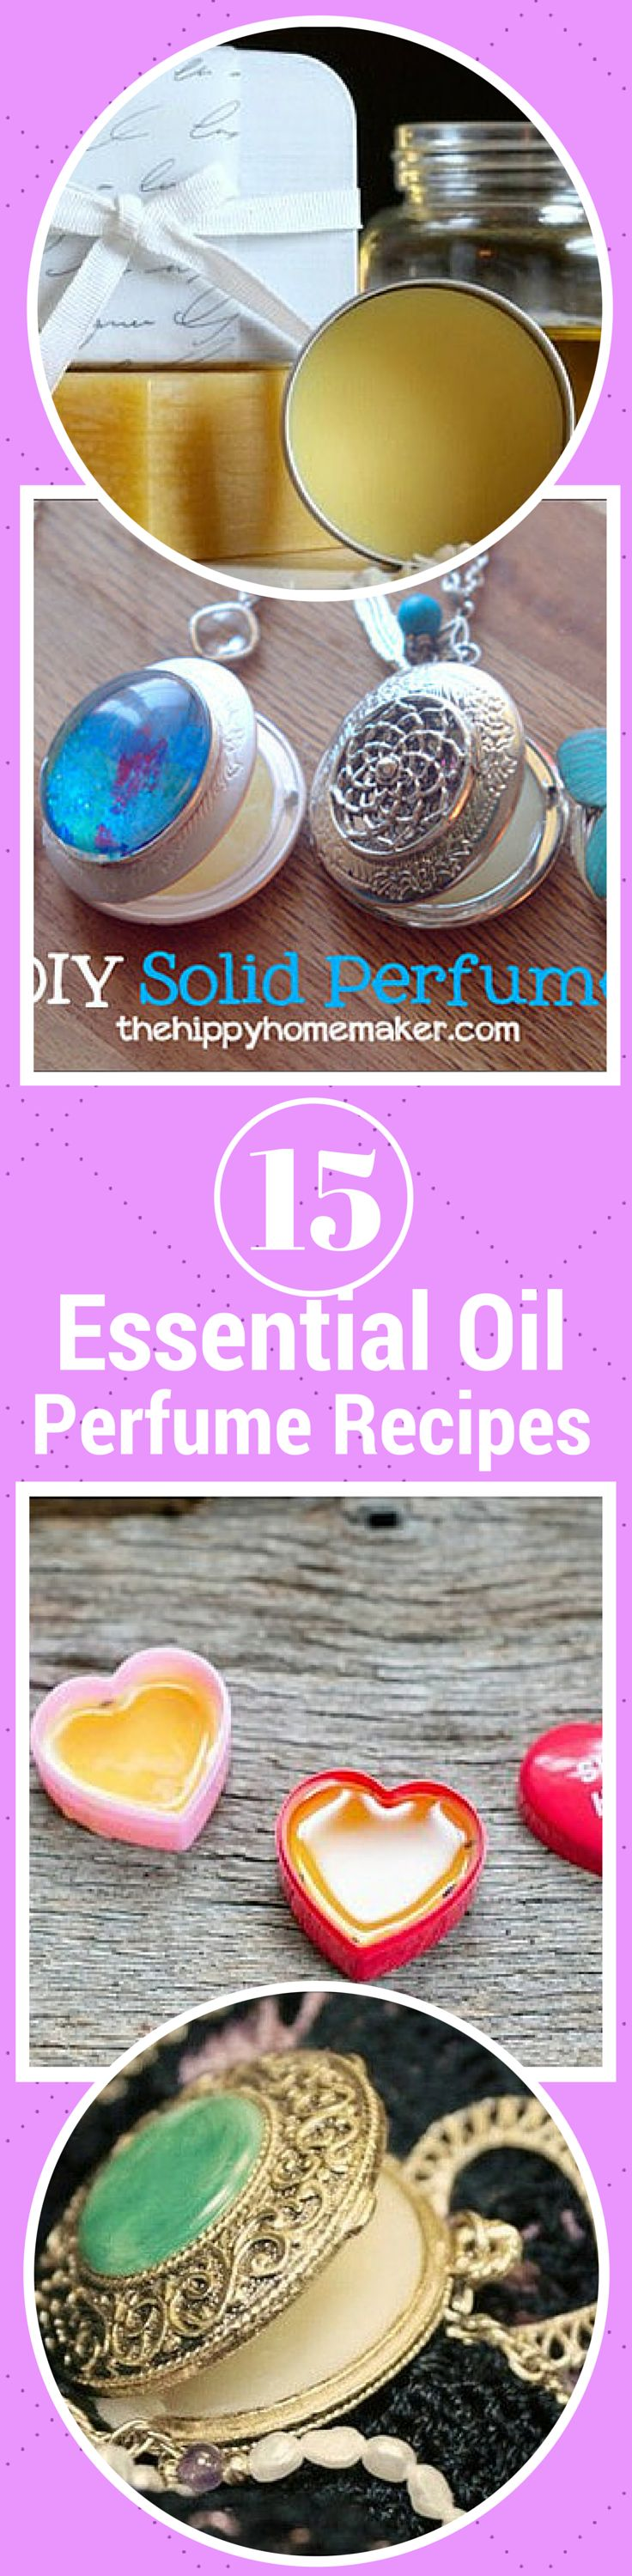 15 Essential Oil Perfume Recipes including Essential Oil Perfume Blends. See how easy it is to make your own AMAZING DIY Perfume Recipes!